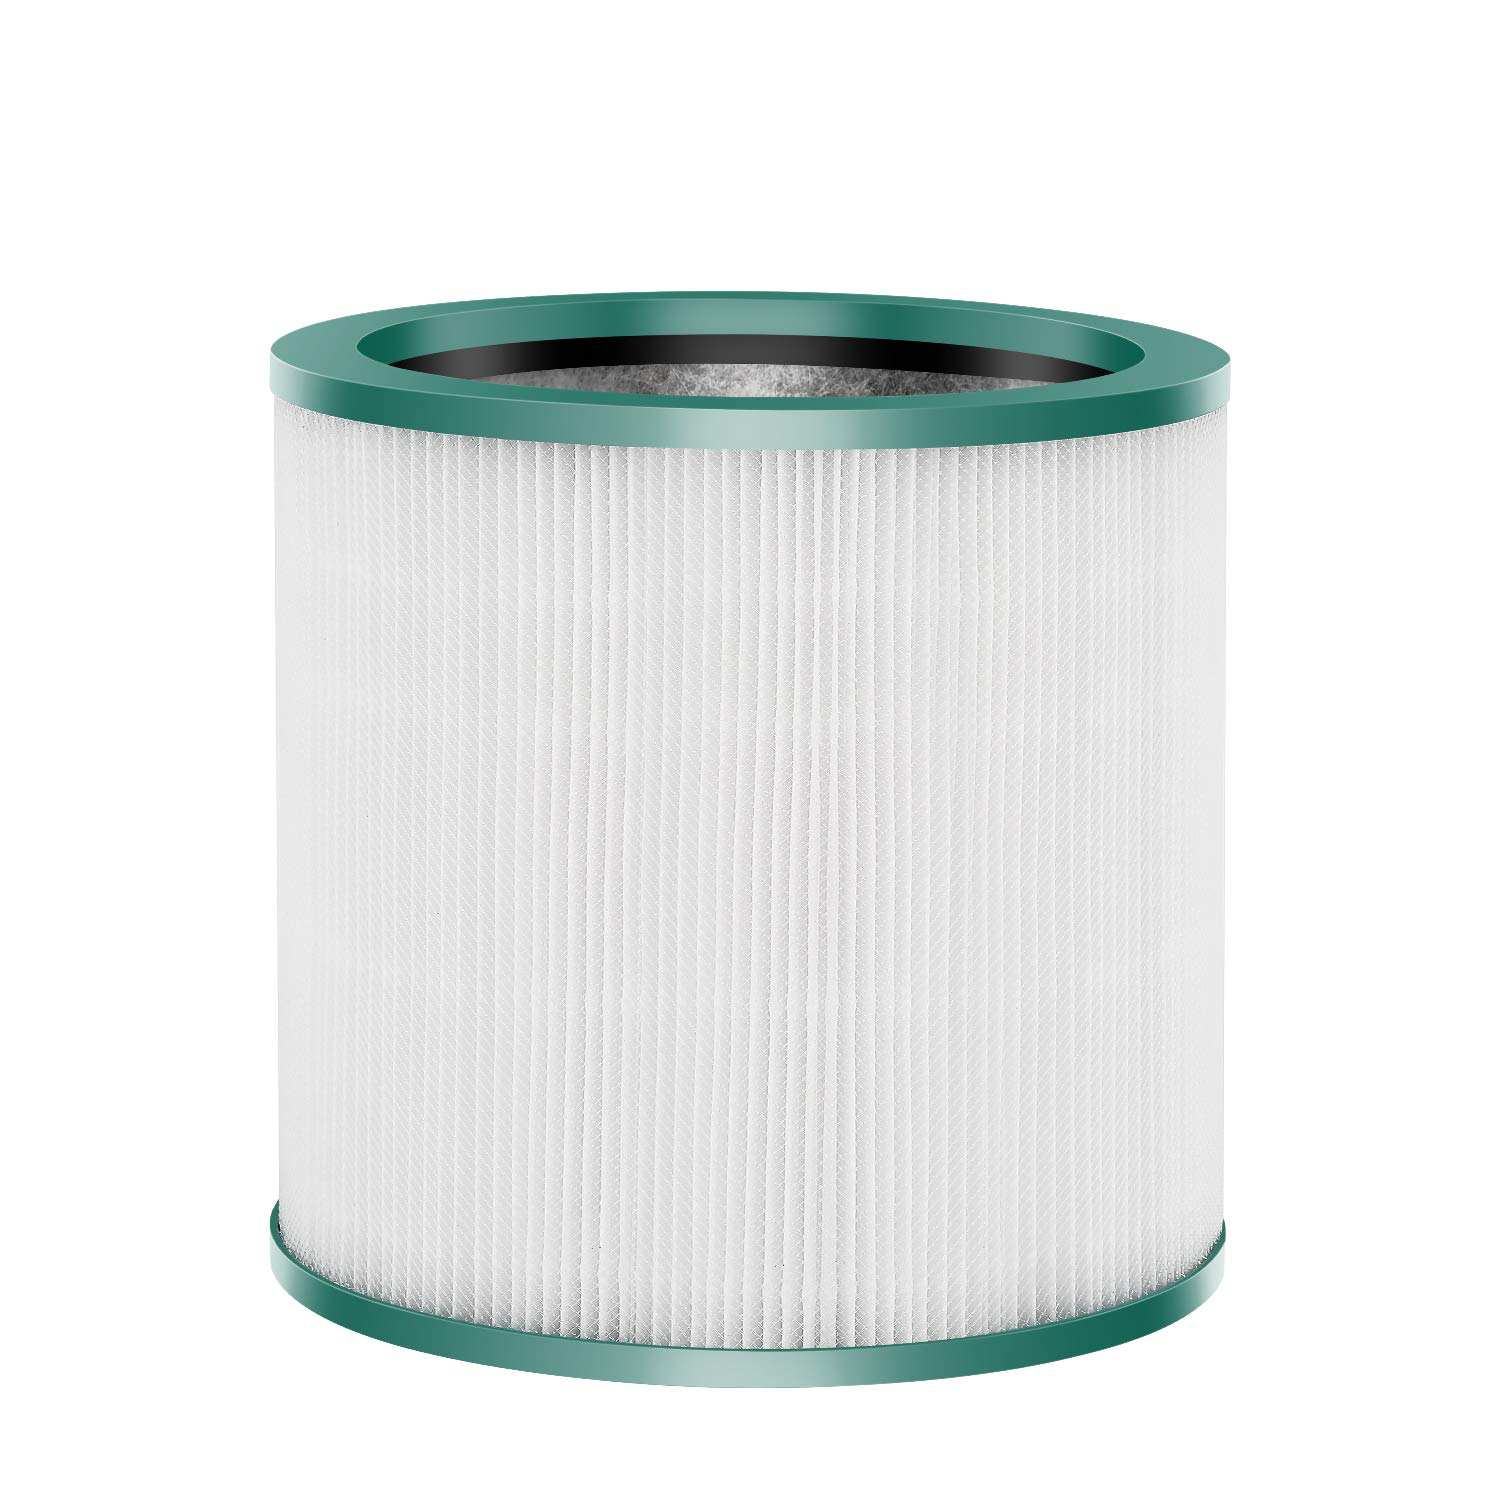 New Hot Replacement Filter Compatible Dyson Pure Cool Link Tp02 Tp03 Tower Purifier